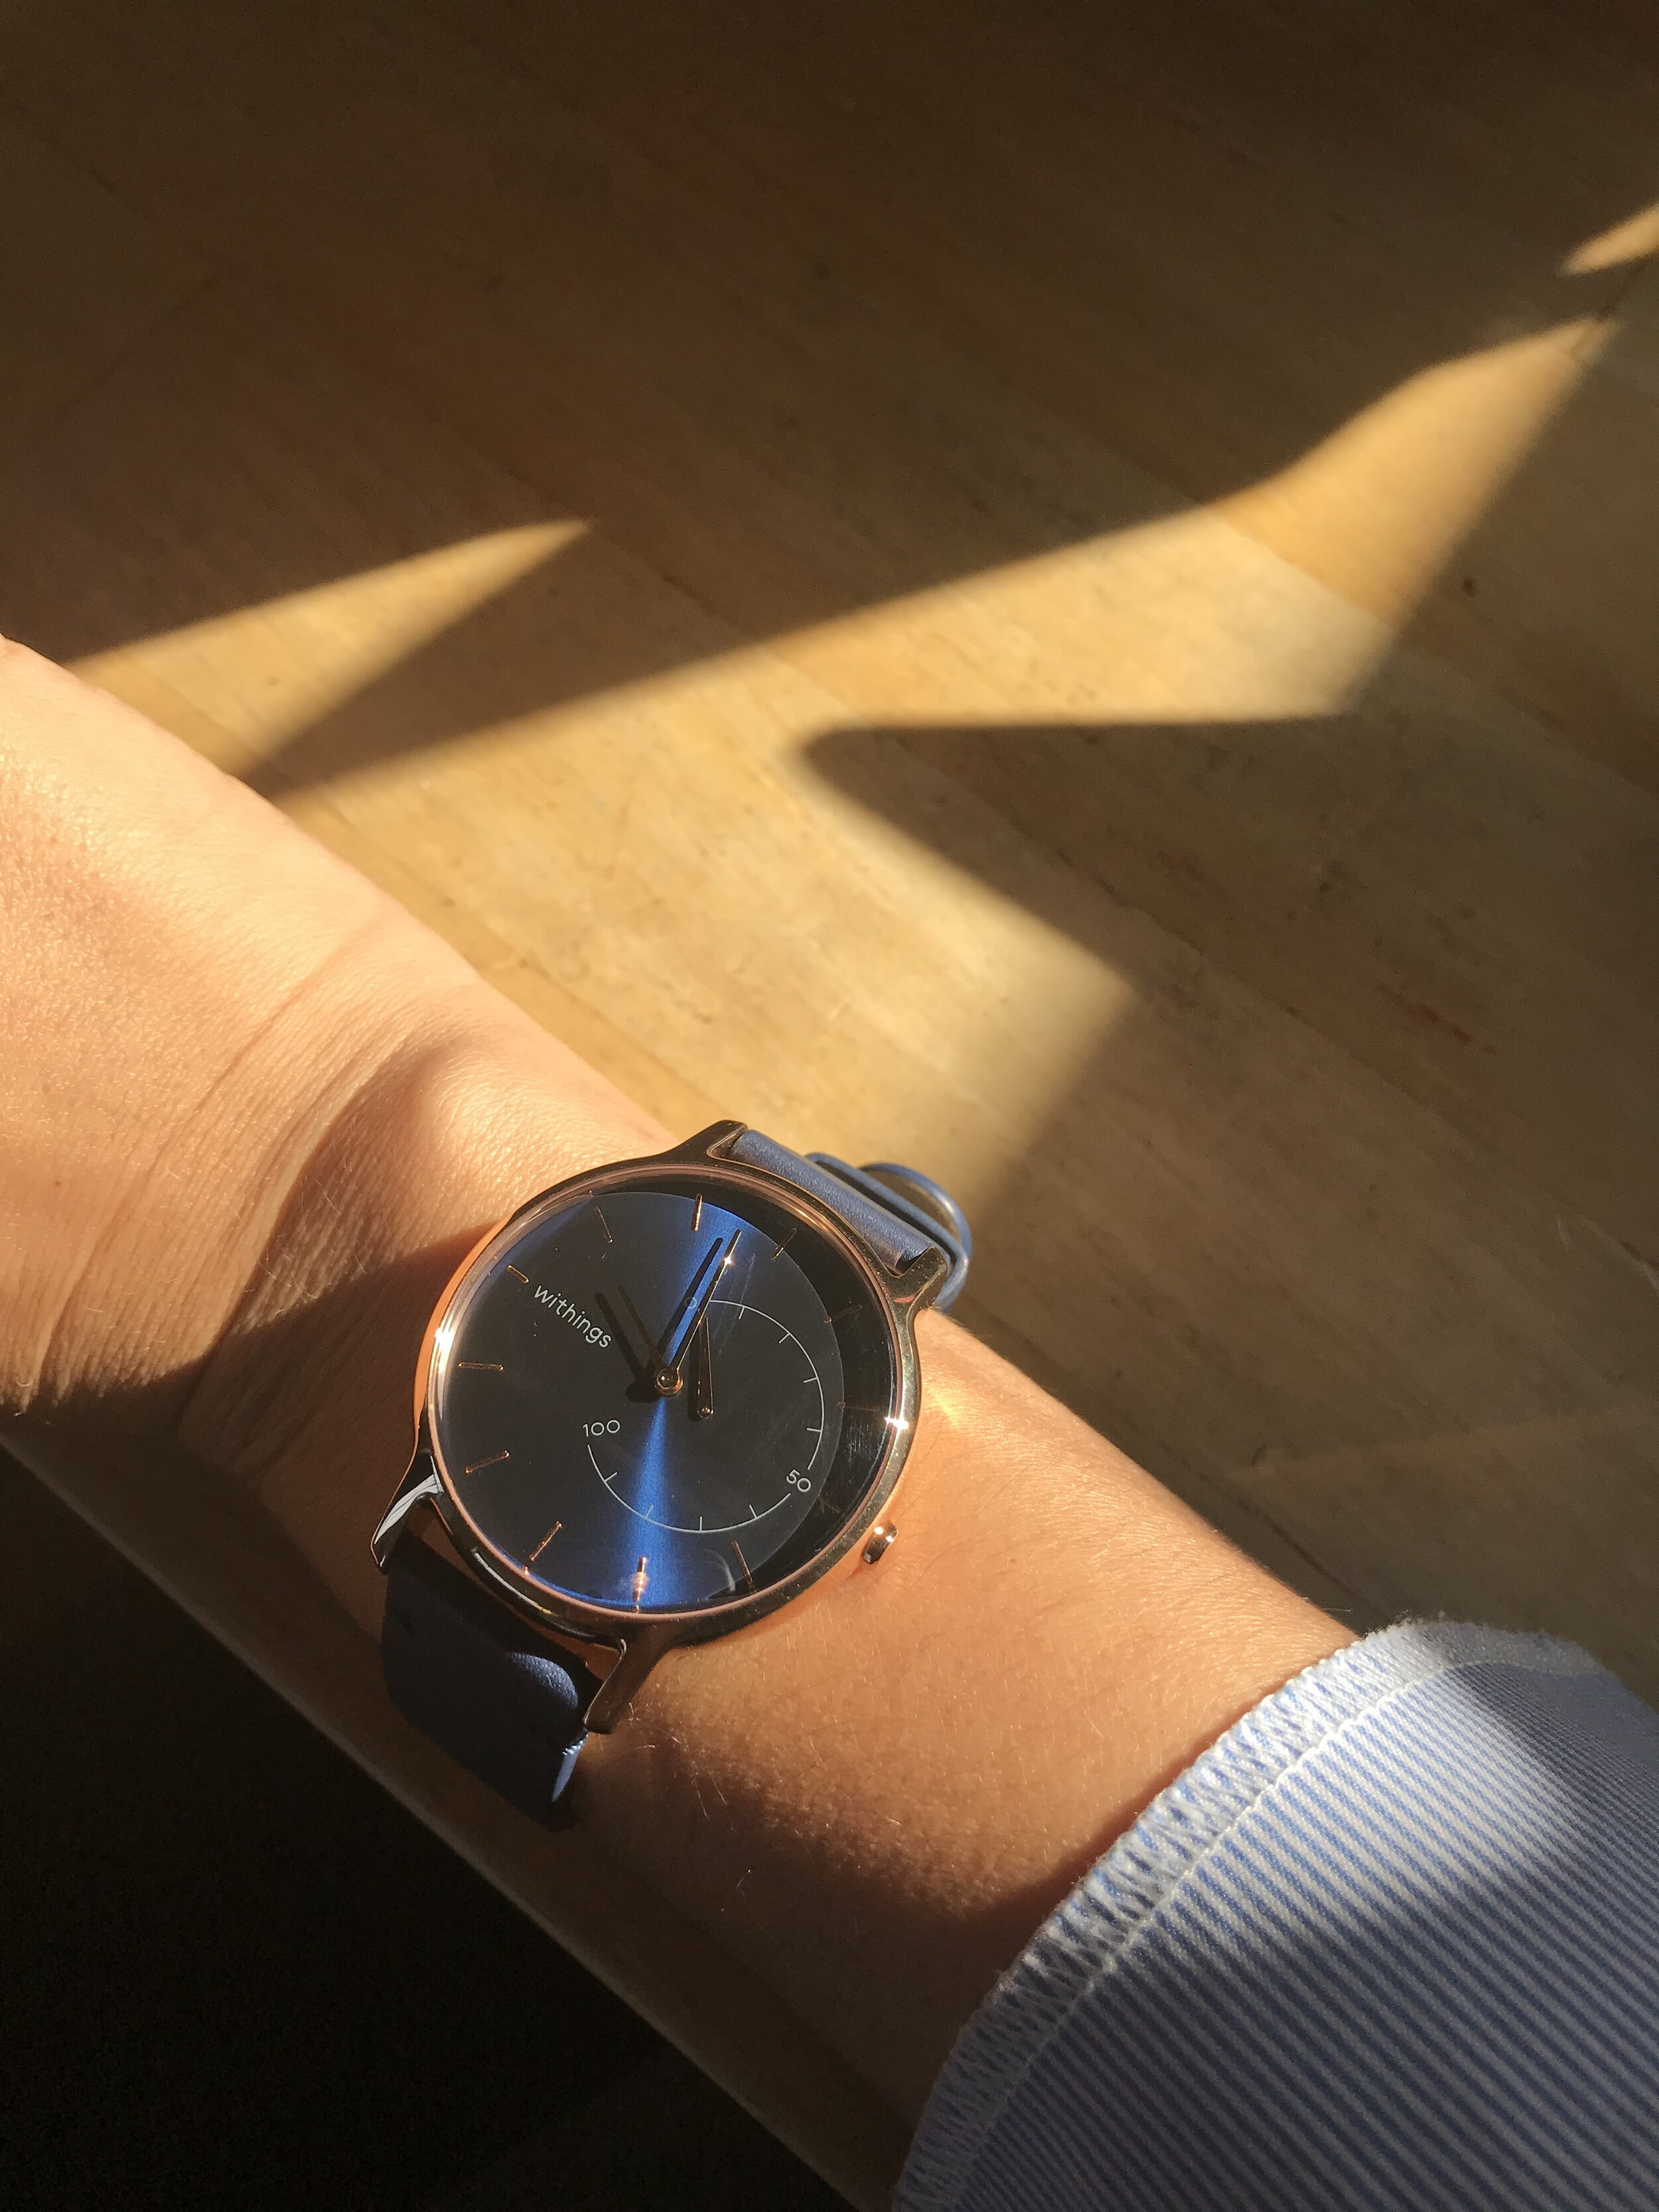 My Withings Smart watch tracks my sleep, my steps, and my workouts!